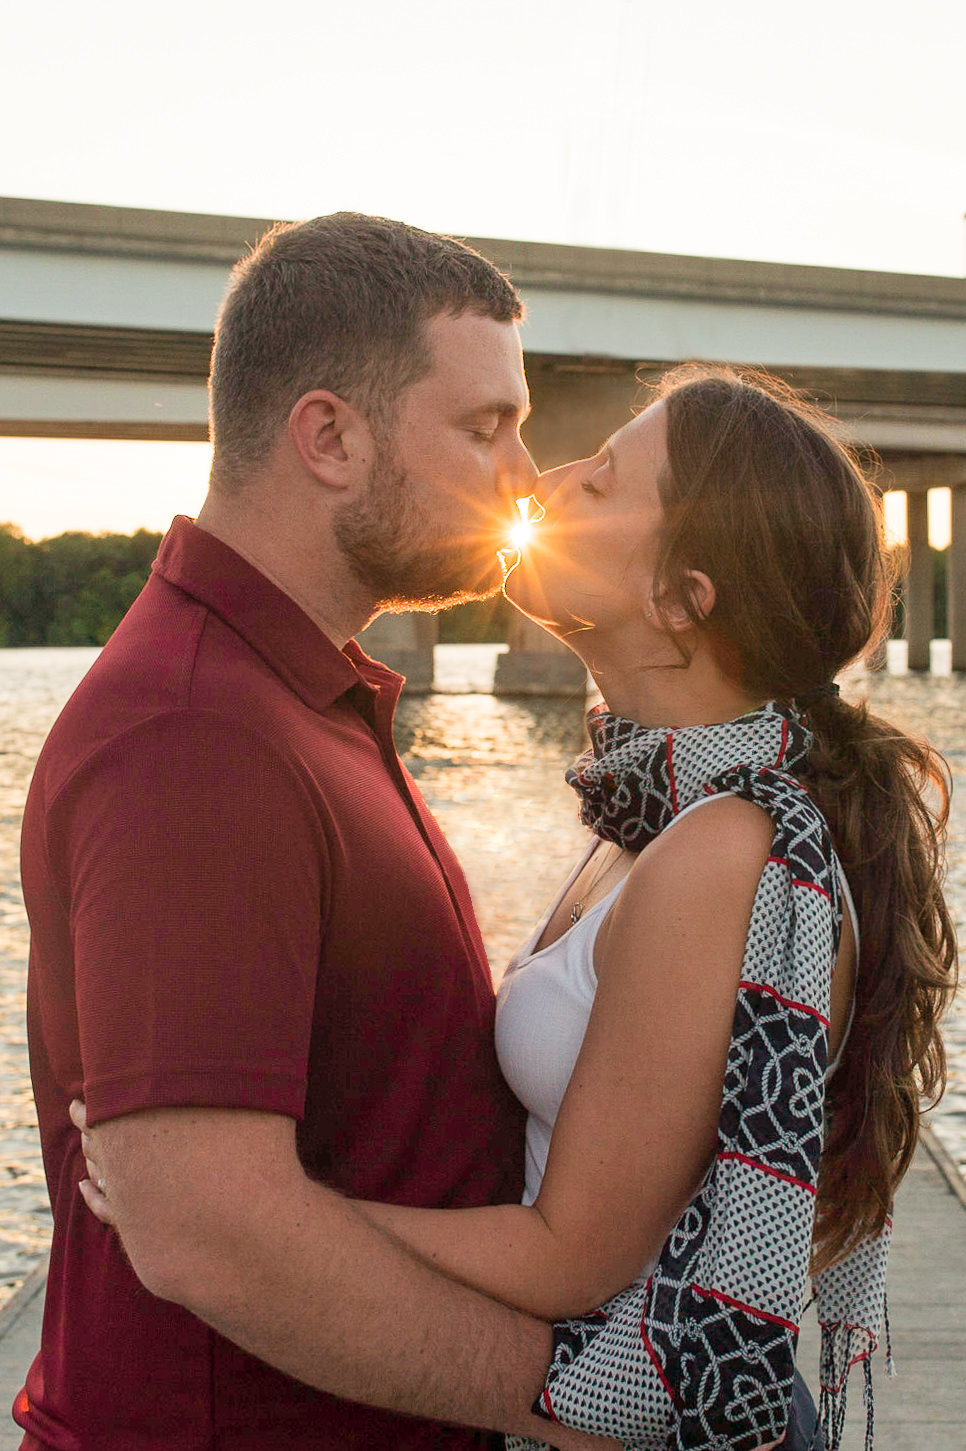 amy-mike-bordentown-nj-engagement-session-imagery-by-marianne-2016-89